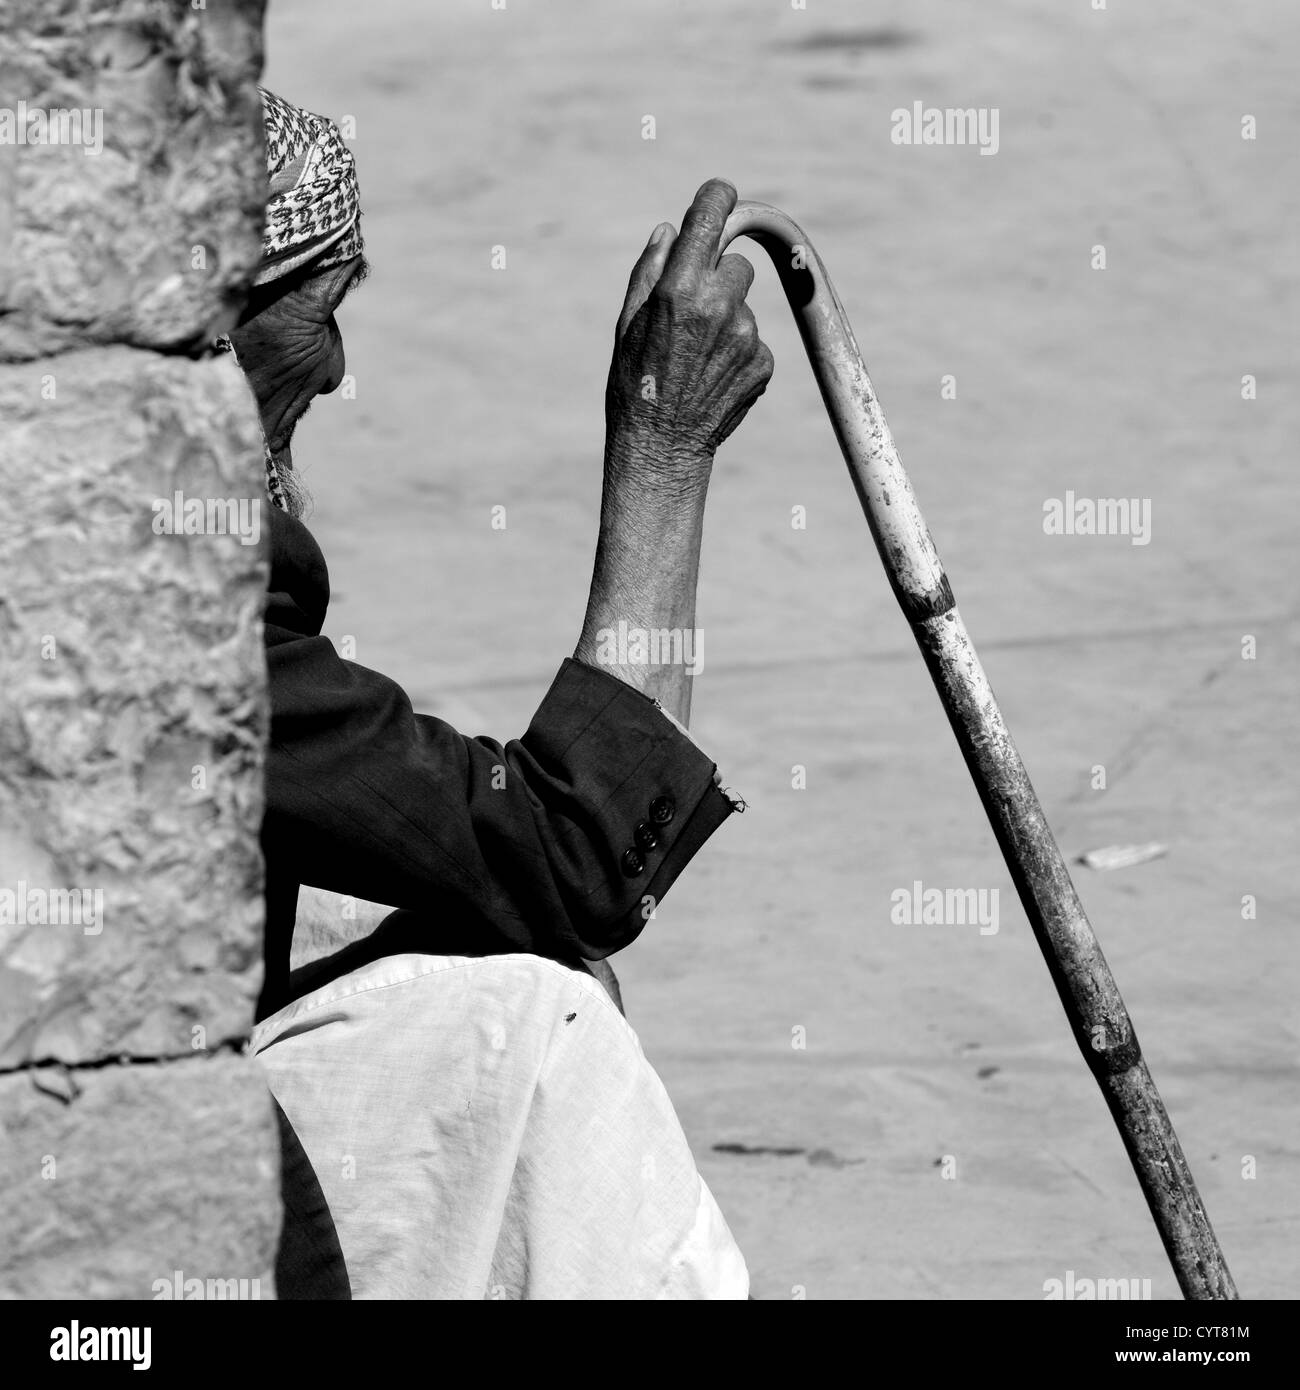 Old Man Sitting Against A Wall And Holding A Cane In Shibam, Yemen - Stock Image